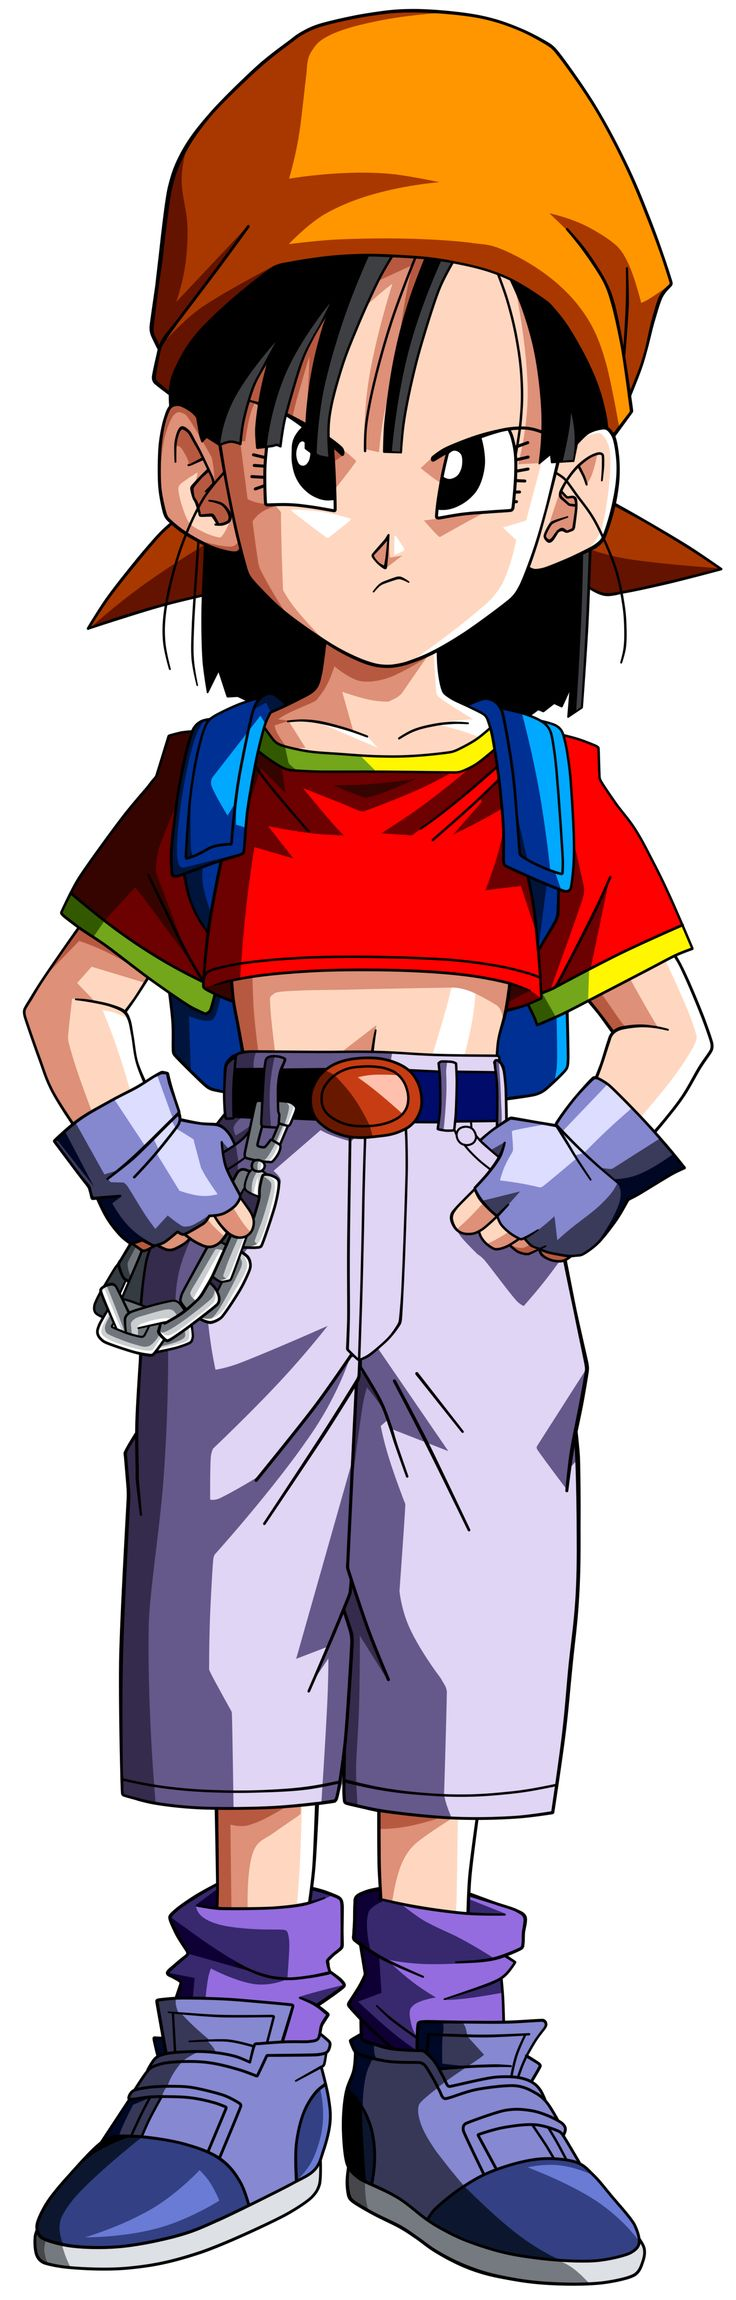 130 best DB gt images on Pinterest  Dragon ball gt Goku and Dragons